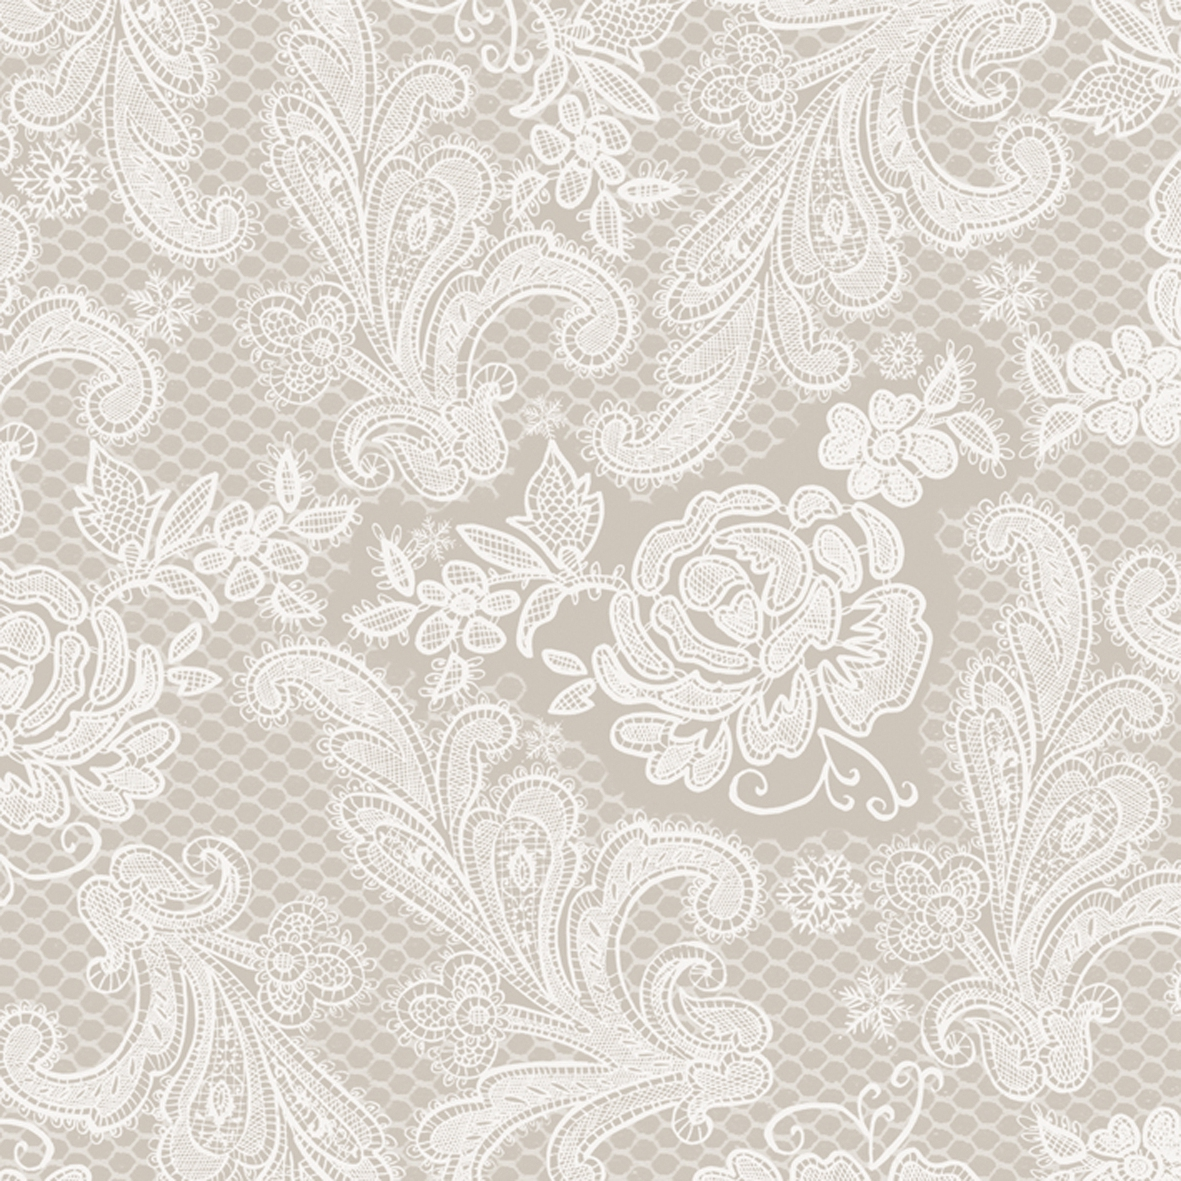 Lunch Servietten Lace Royal taupe